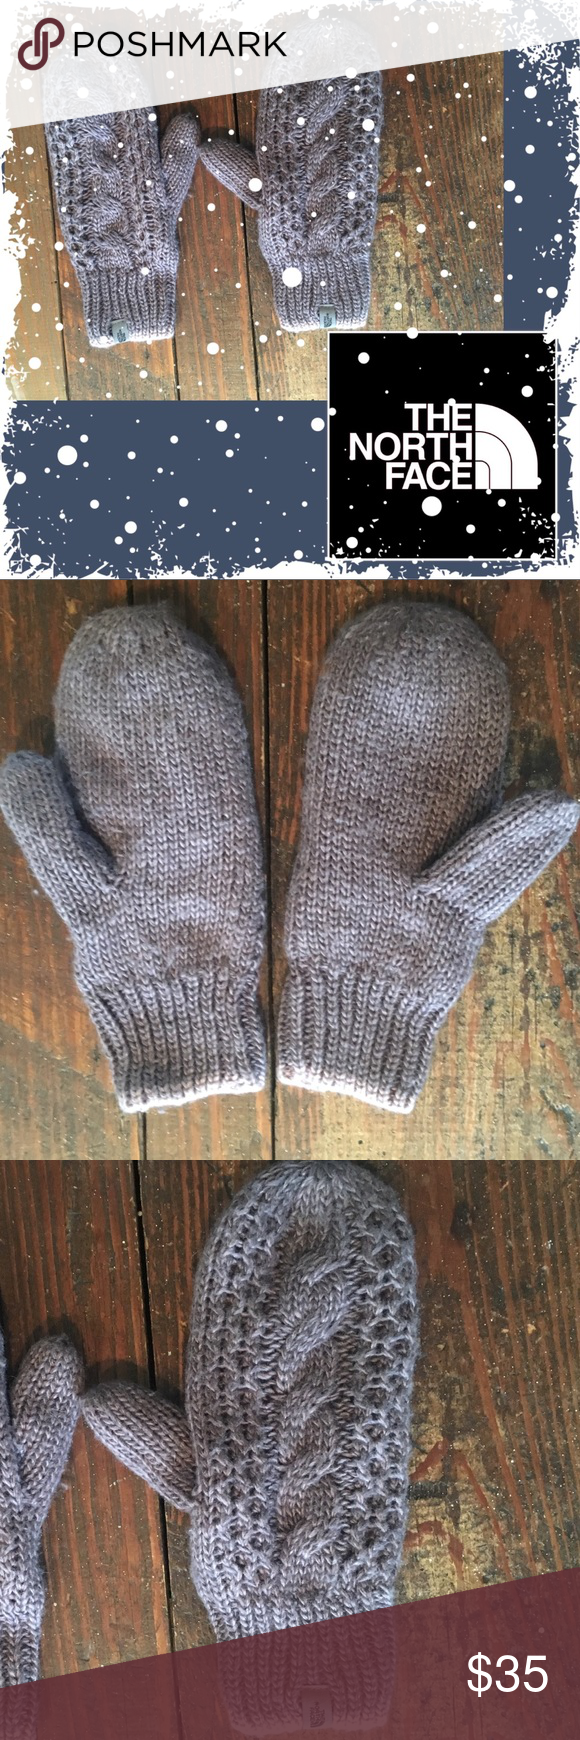 9c9922c66 The North Face Minna Cable Knit Mittens Beautiful Cable Knit Lined ...